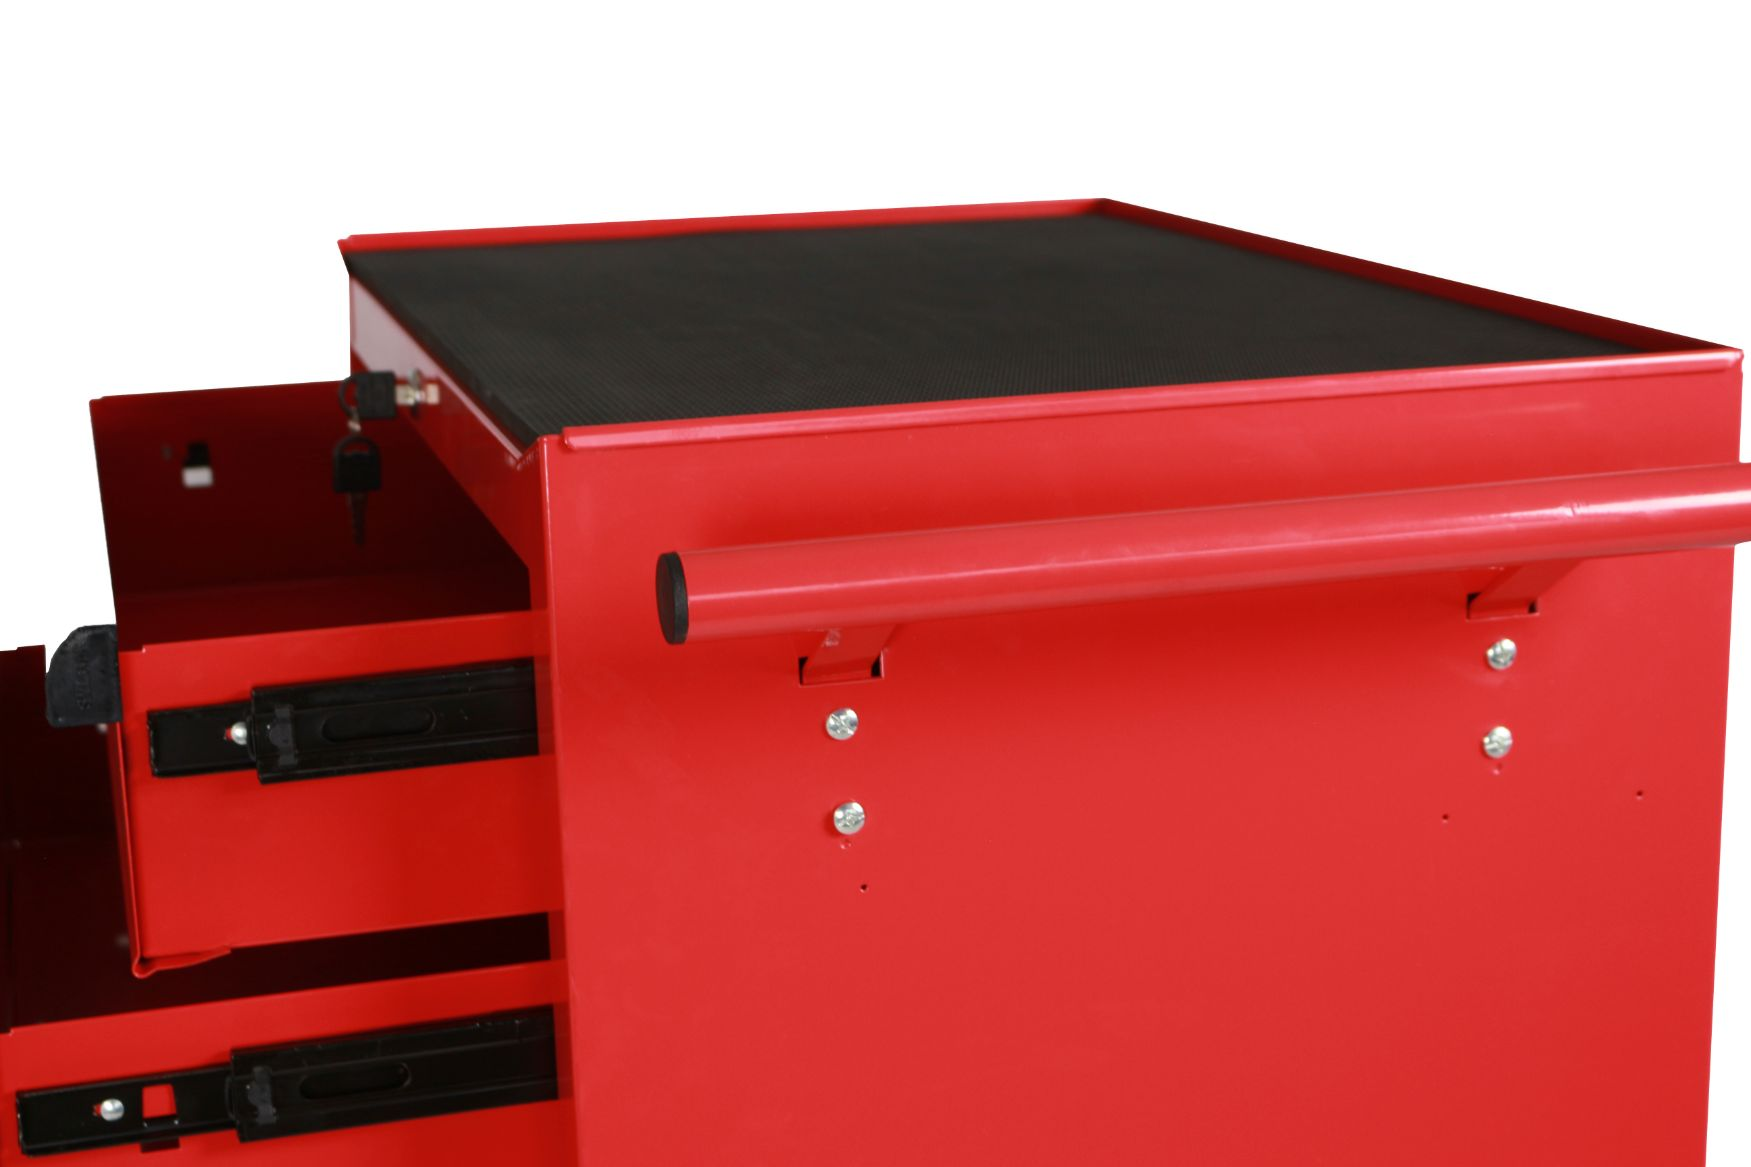 New ESSupplier  5 Drawer Tool Cabinet With Lockable Drawers